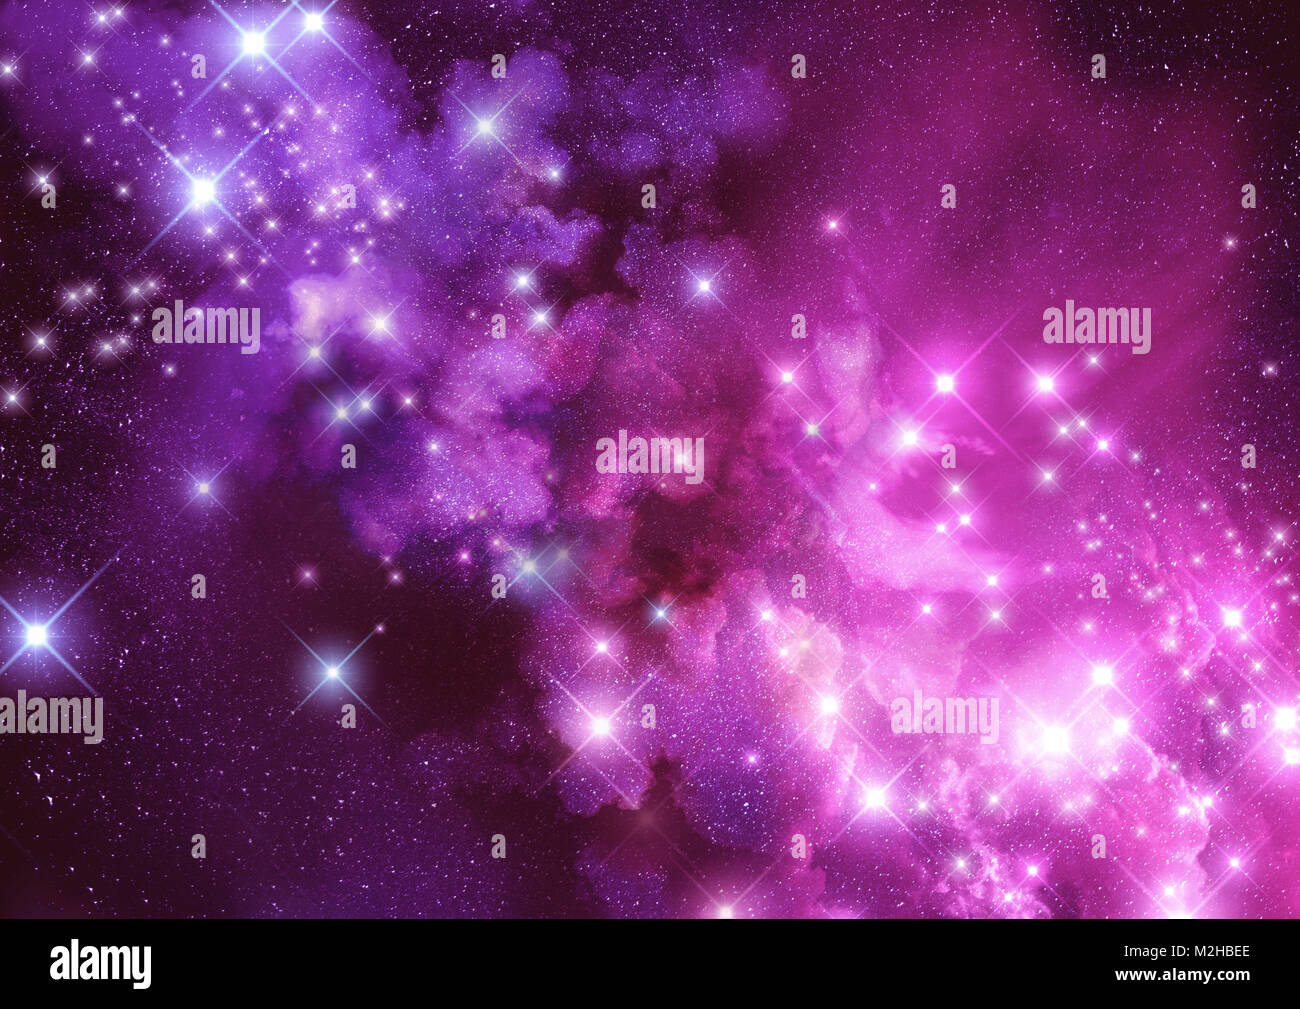 nebula stockfotos nebula bilder alamy. Black Bedroom Furniture Sets. Home Design Ideas